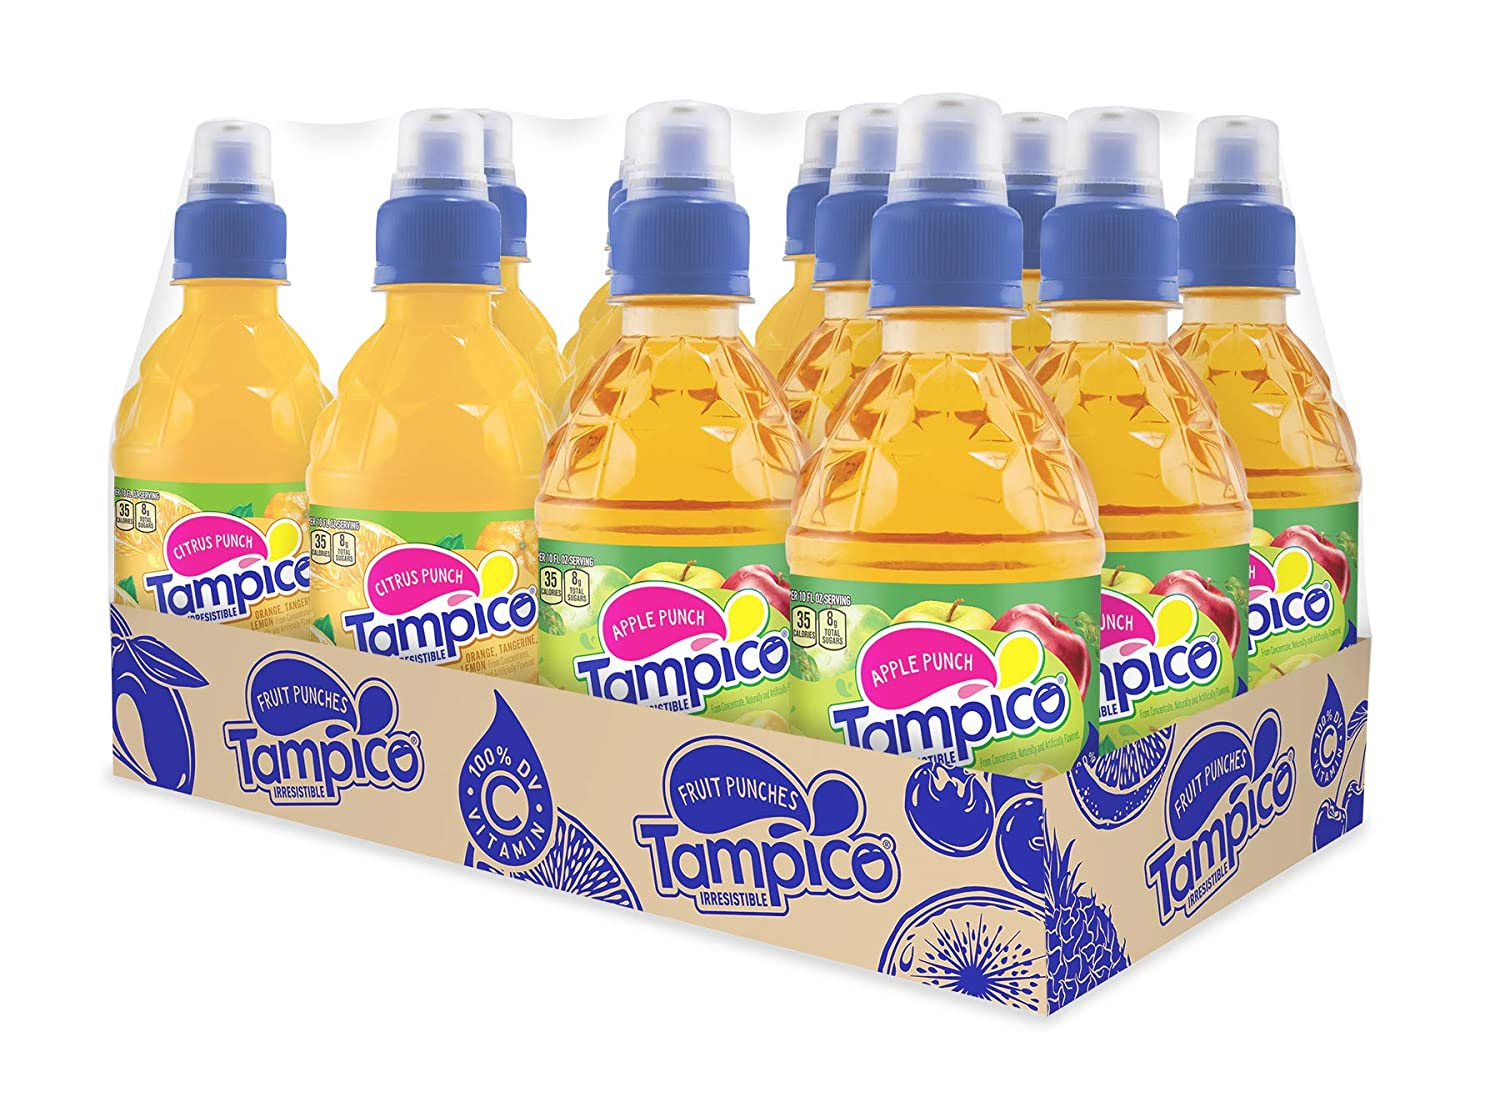 Tampico Variety Pack, 6 Citrus Punch, 6 Apple Punch, Naturally Flavored, 1 CT